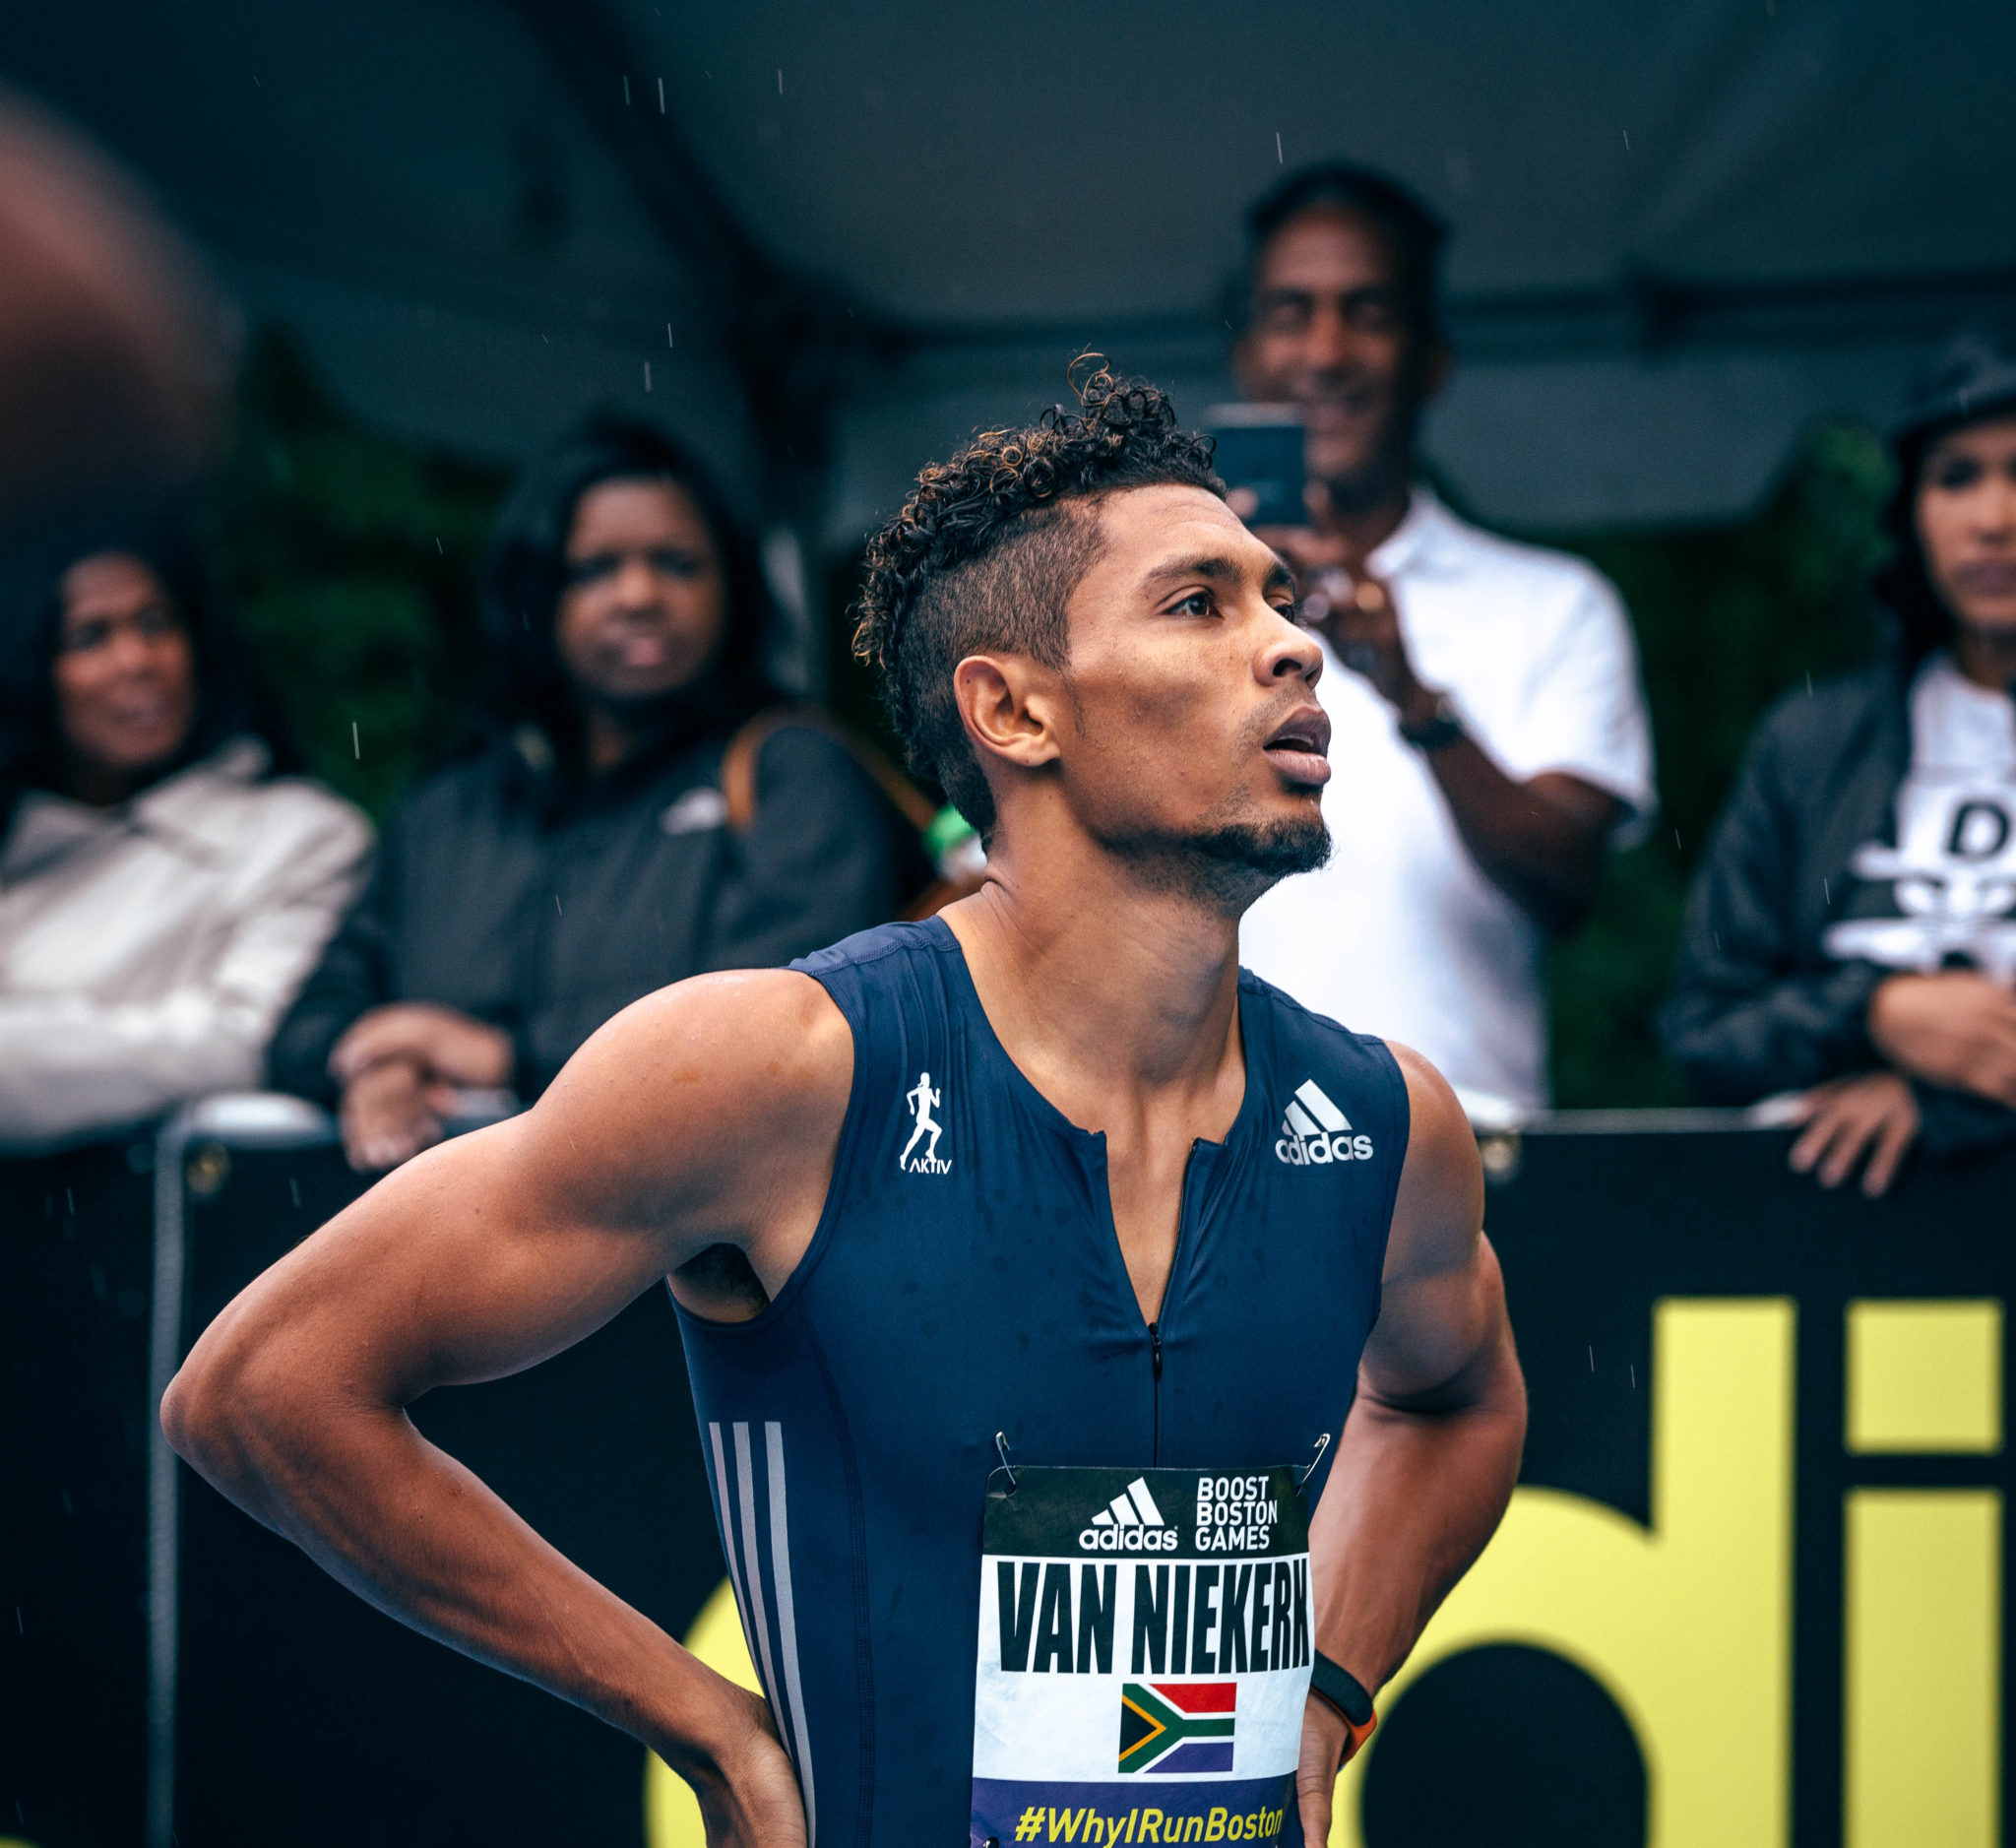 adidas boost boston games - wayde van niekerk